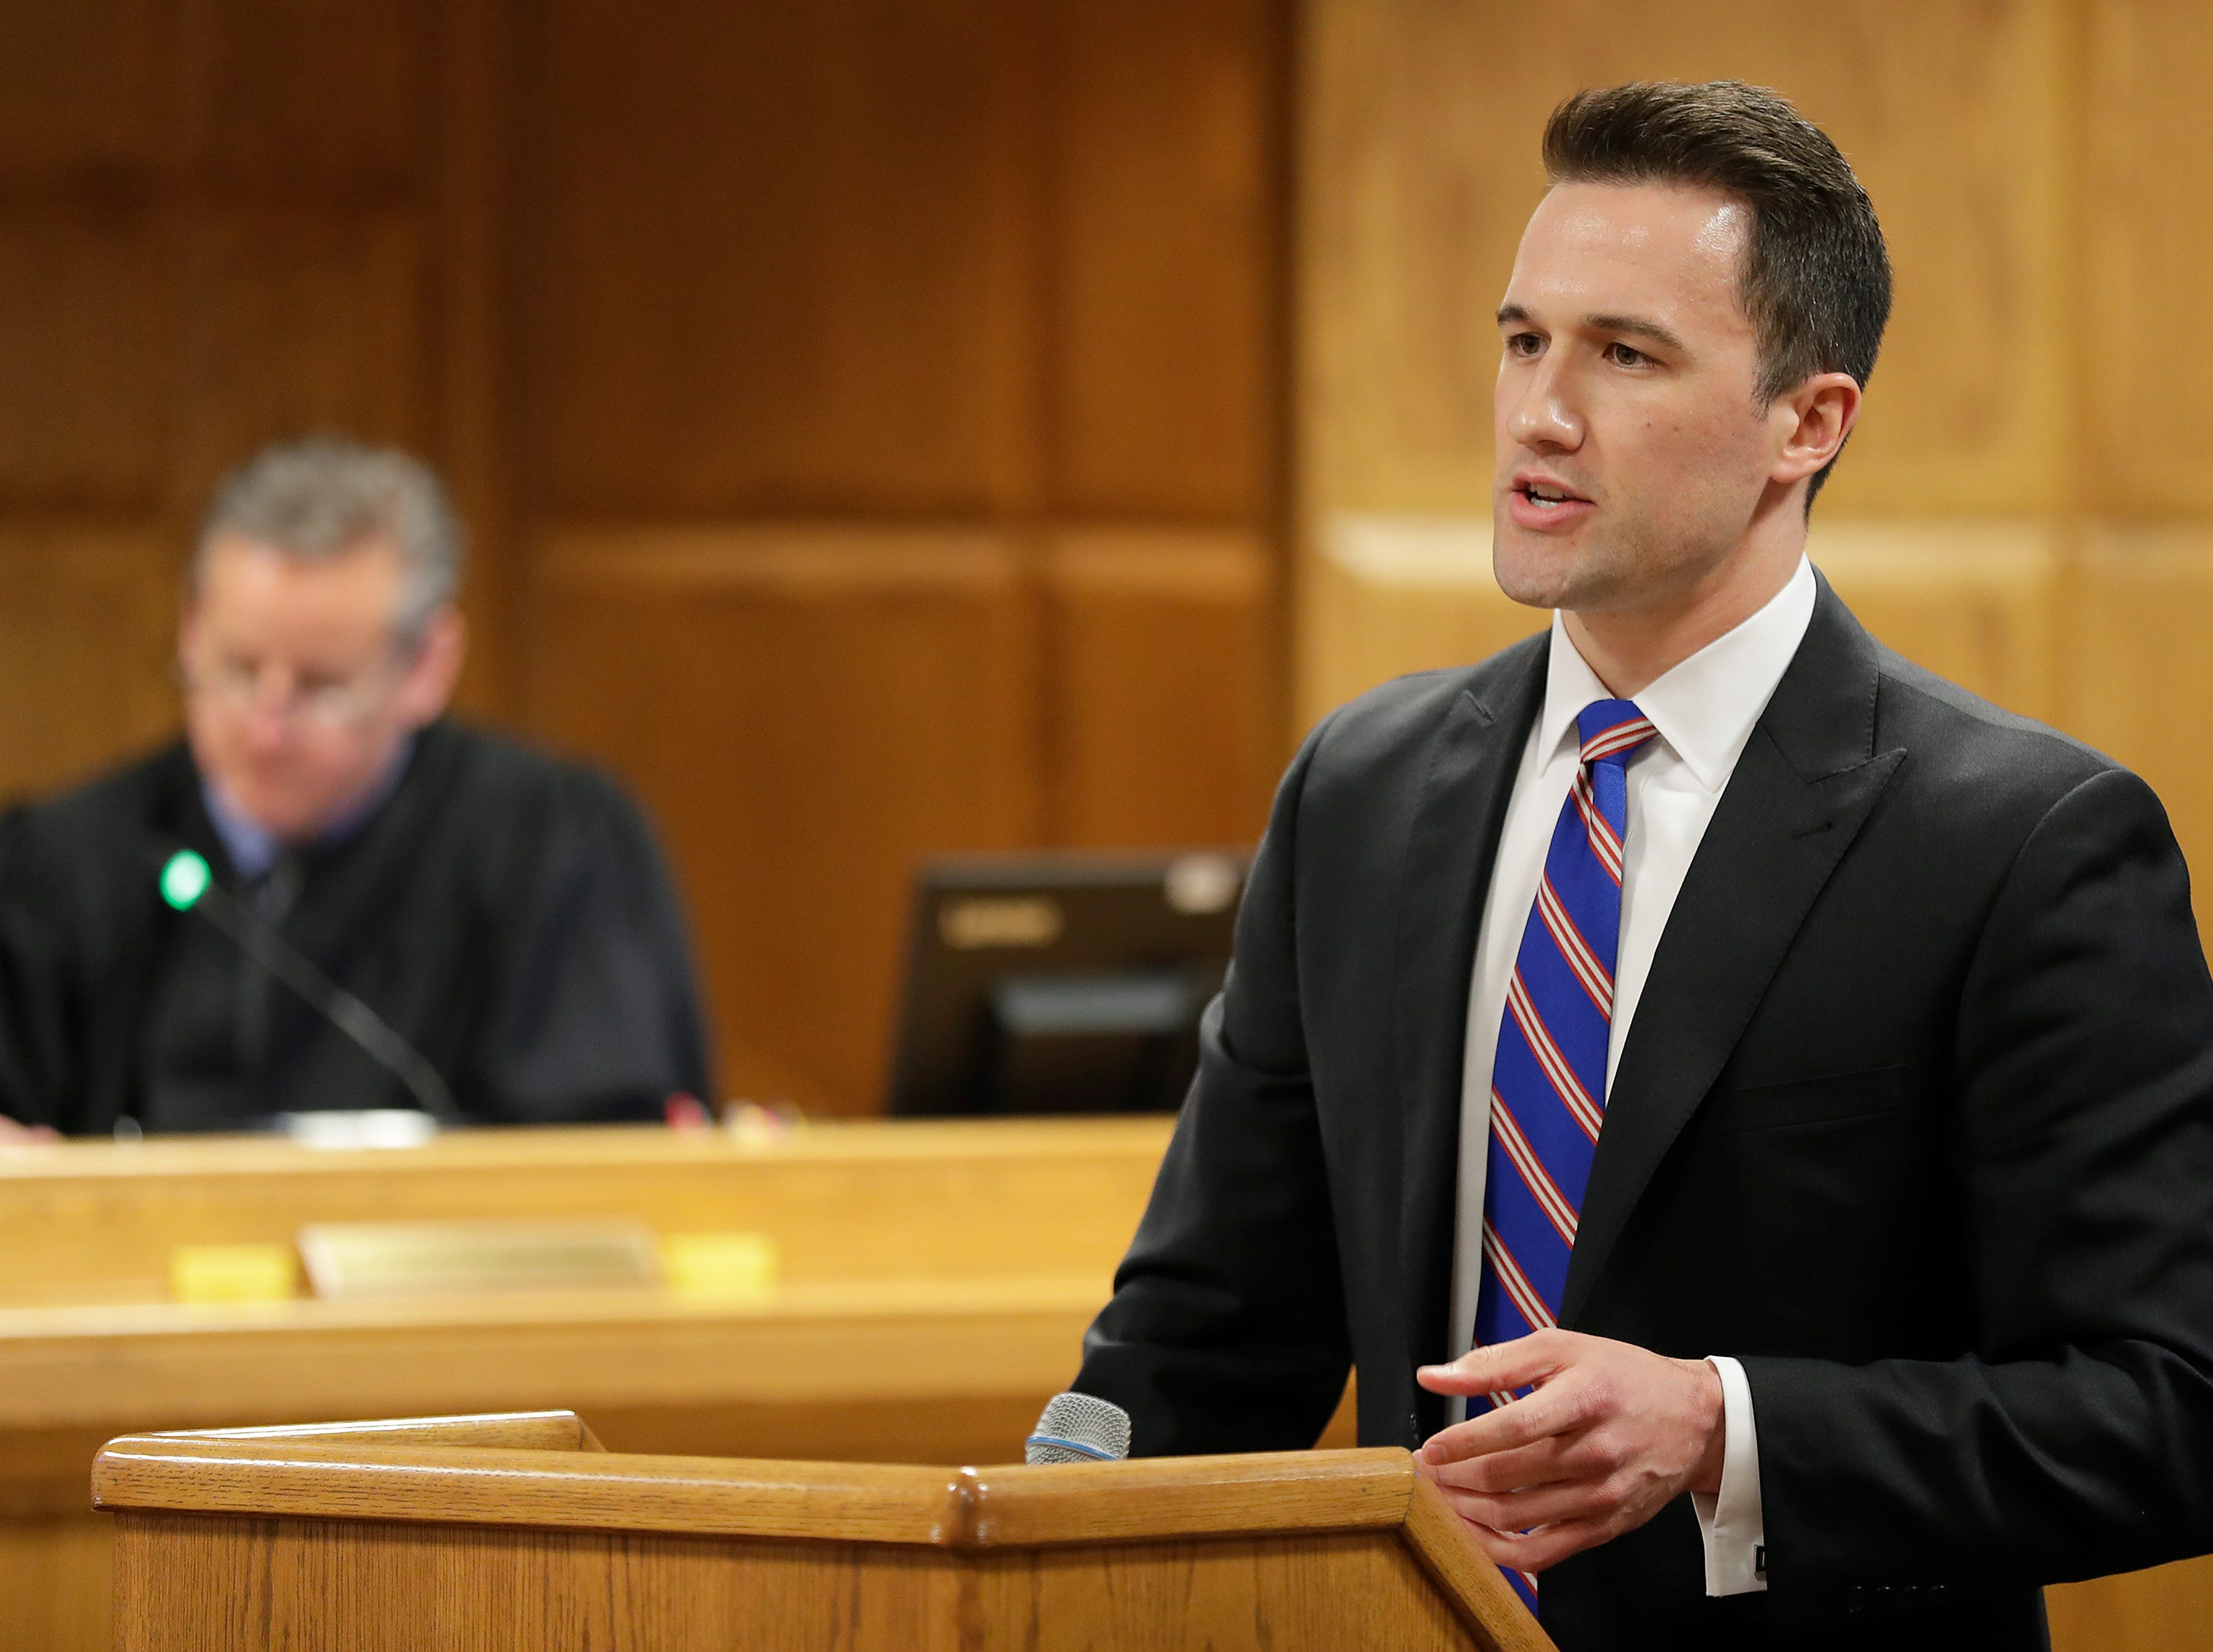 Assistant District Attorney Patrick Leigl makes an opening statement  during day 1 of of a jury trial of Jason Lavigne in Outagamie County Court on Tuesday, April 23, 2019, in Appleton, Wis. Lavigne is a former Little Chute High School teacher accused of sexually assaulting a 14-year-old student in 1999